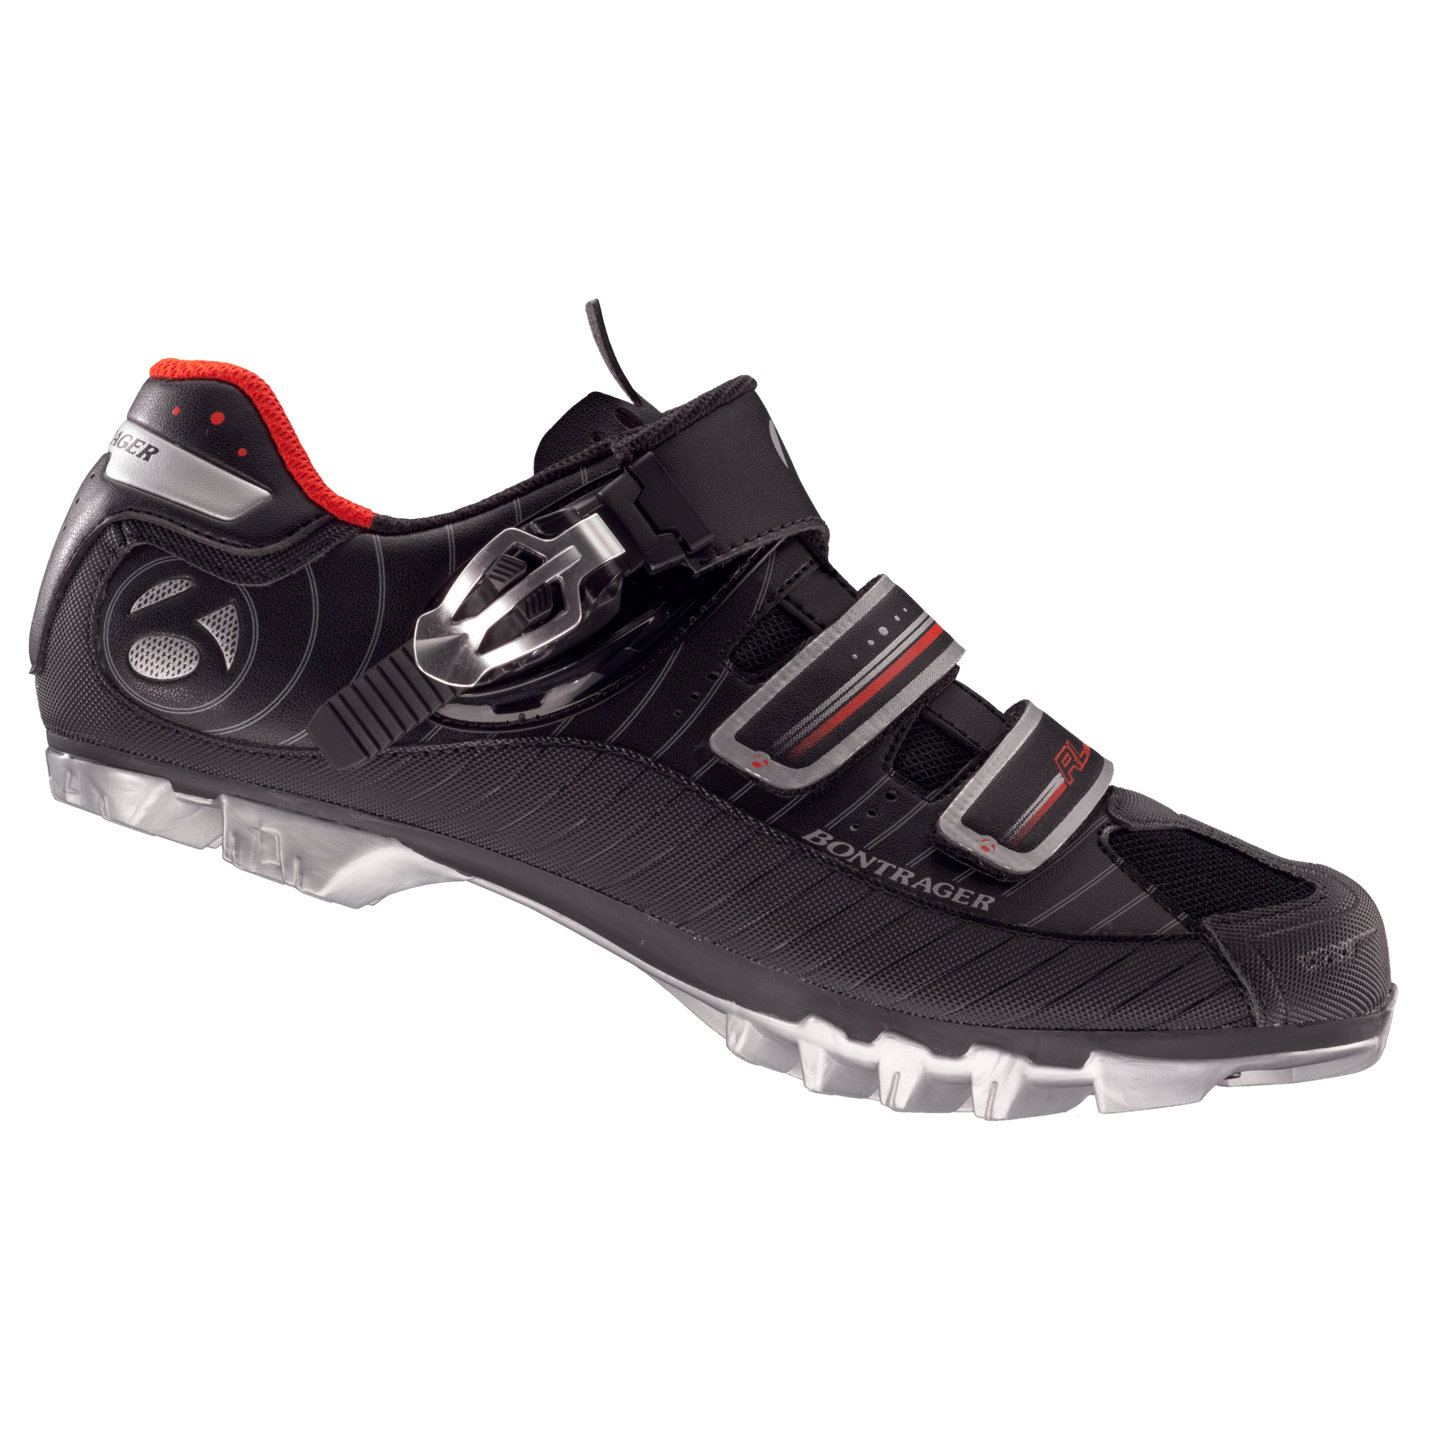 Tretry Bontrager Race Lite Mountain black 2013